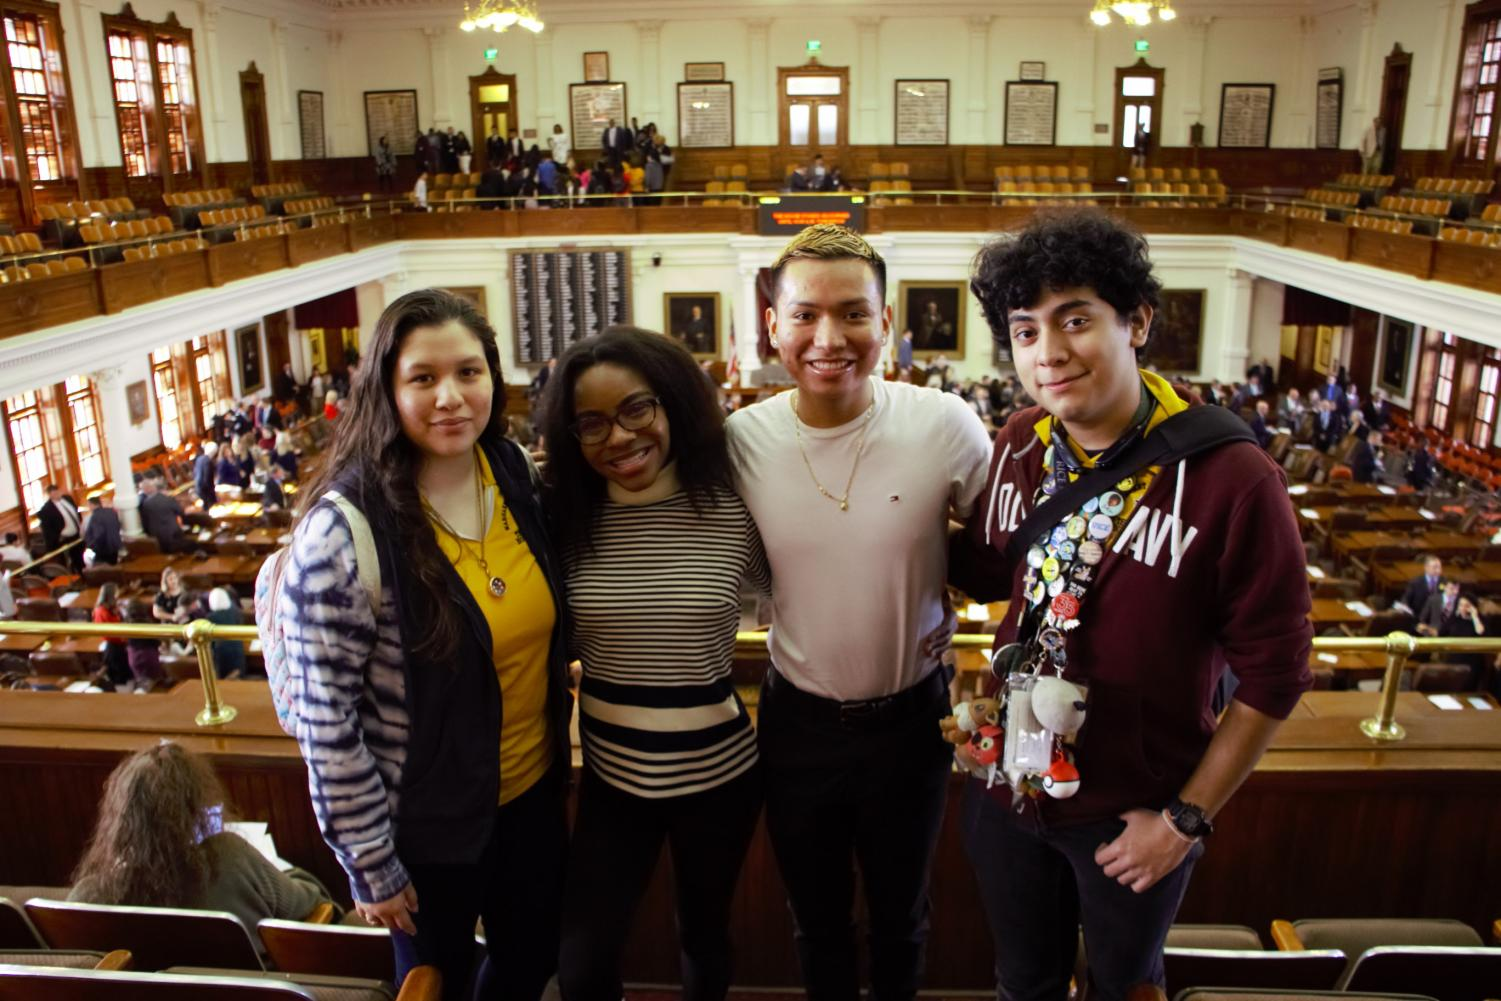 The Wisdom Chronicle & TV News Crew (L-R: Vazquez, Obasi, Poz, Arreola), in the Gallery at the Texas House of Representatives